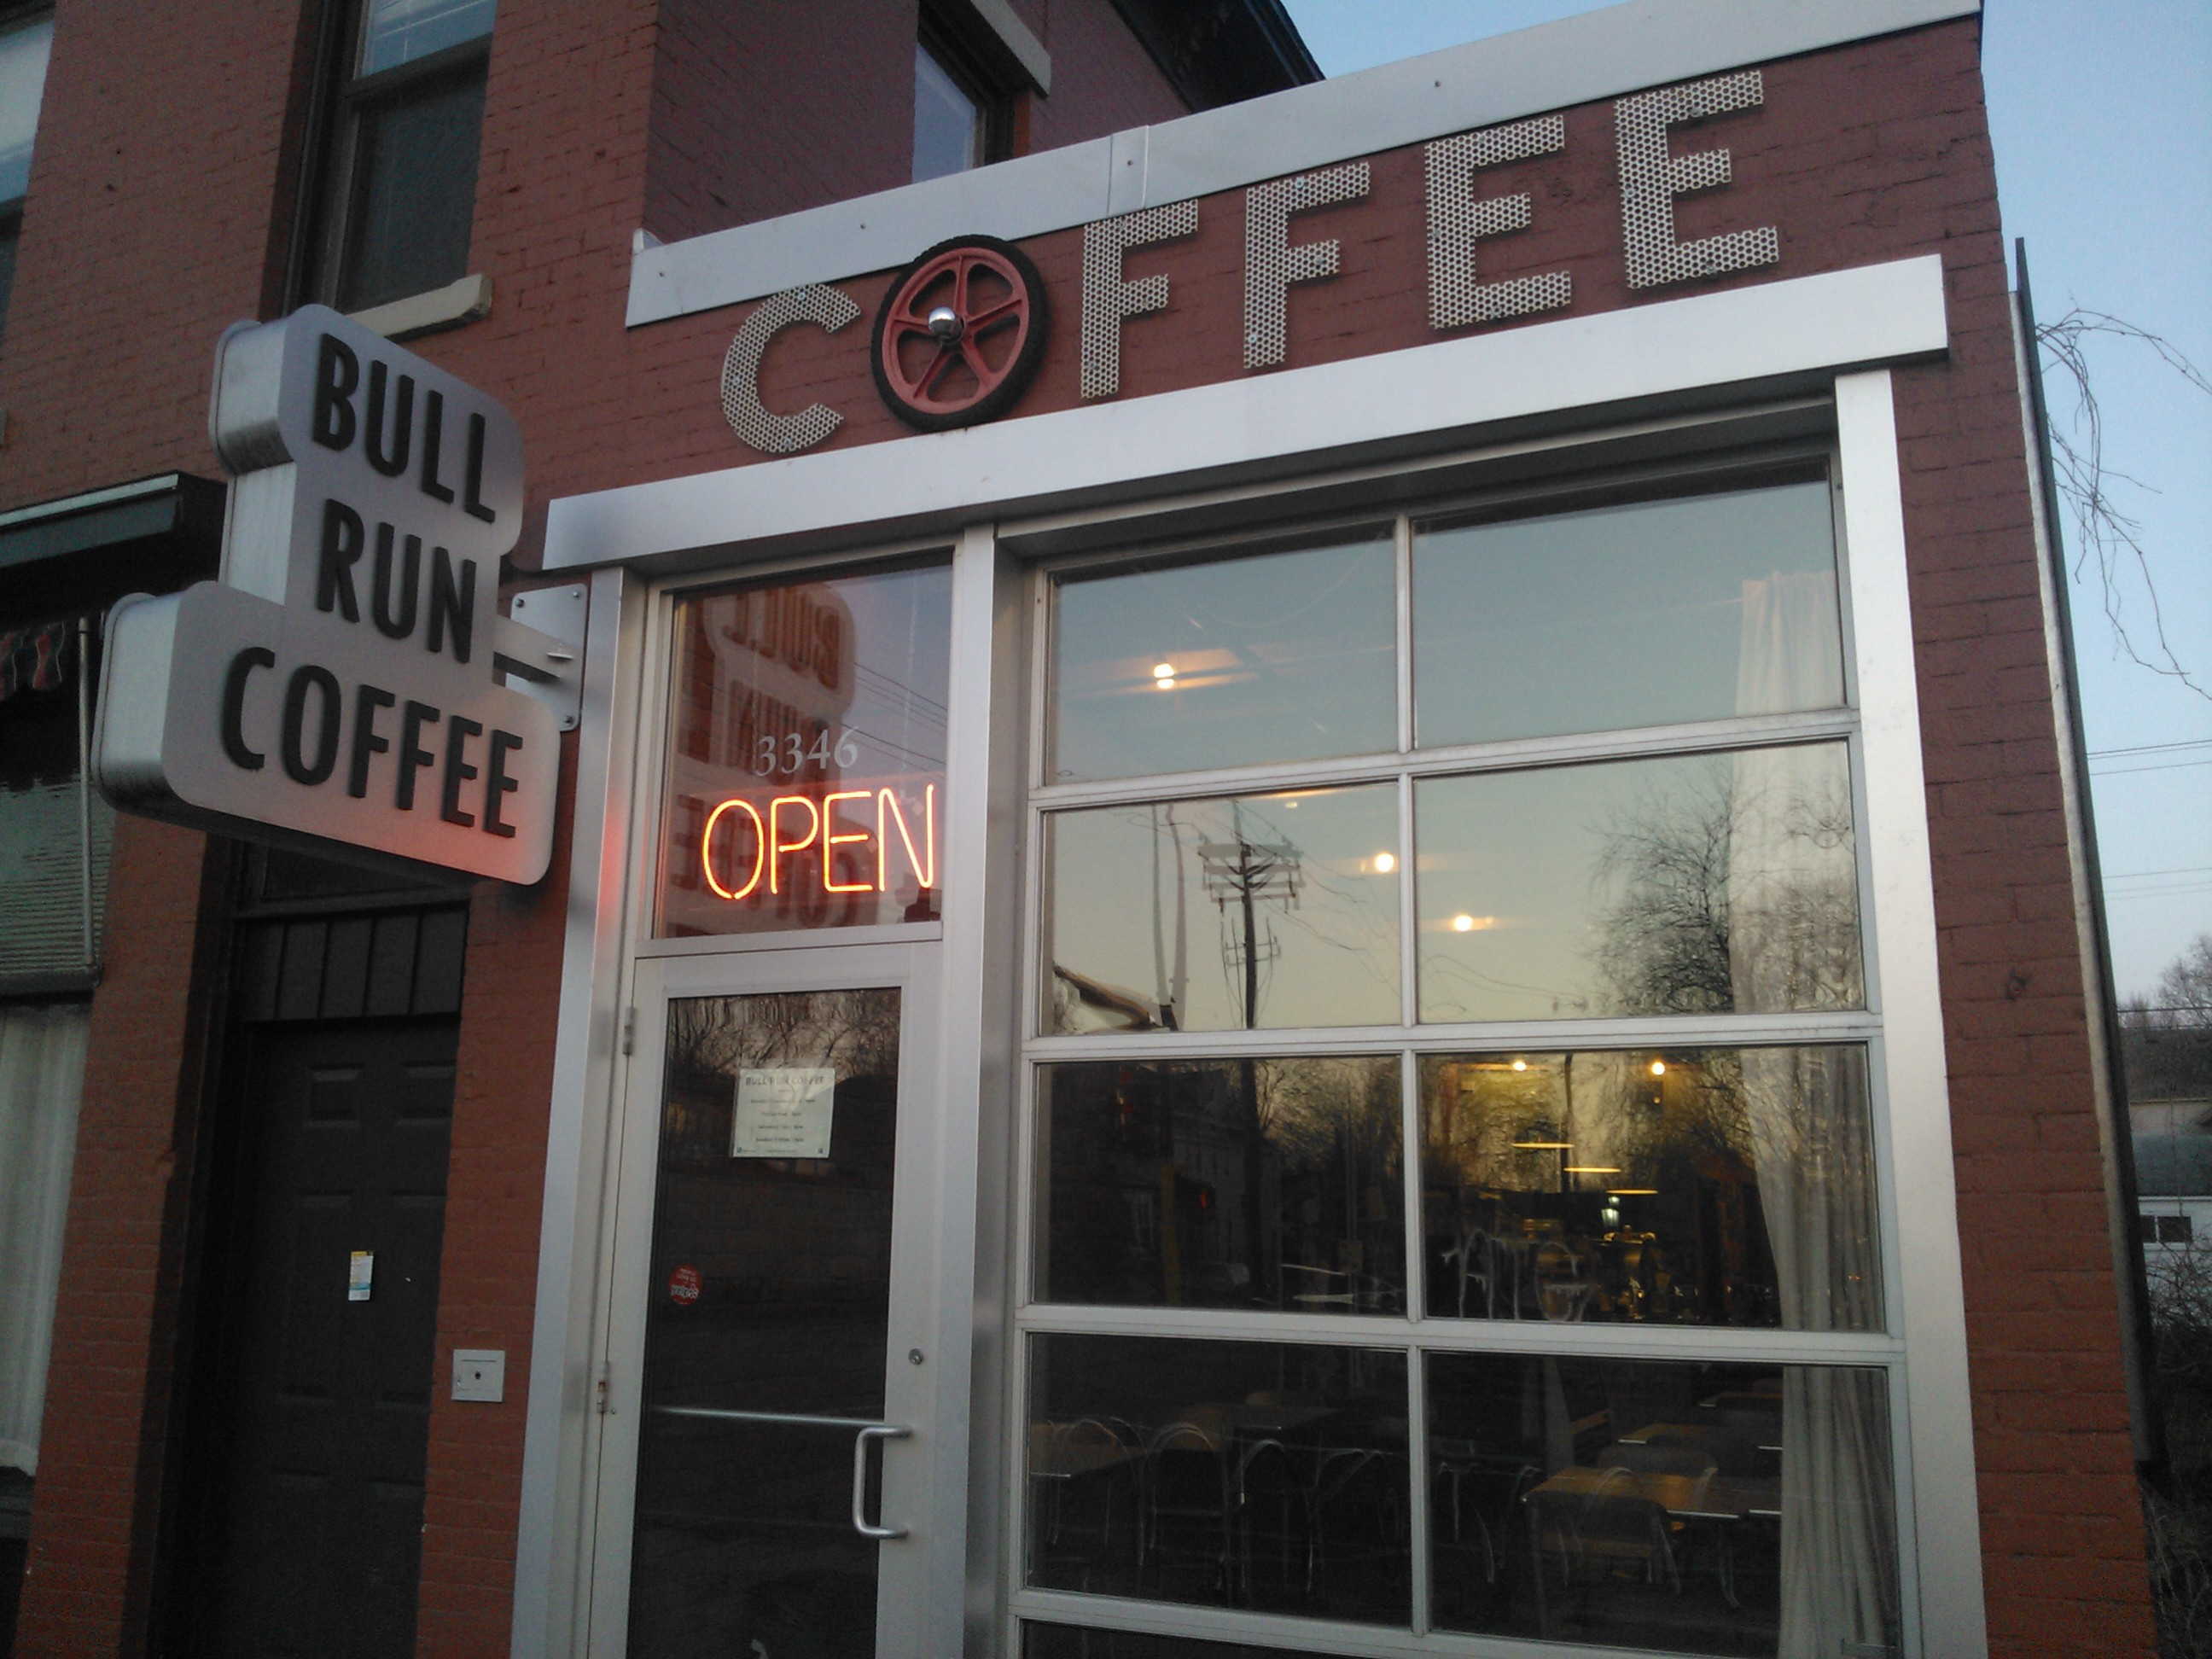 Bull Run Coffee on Lyndale